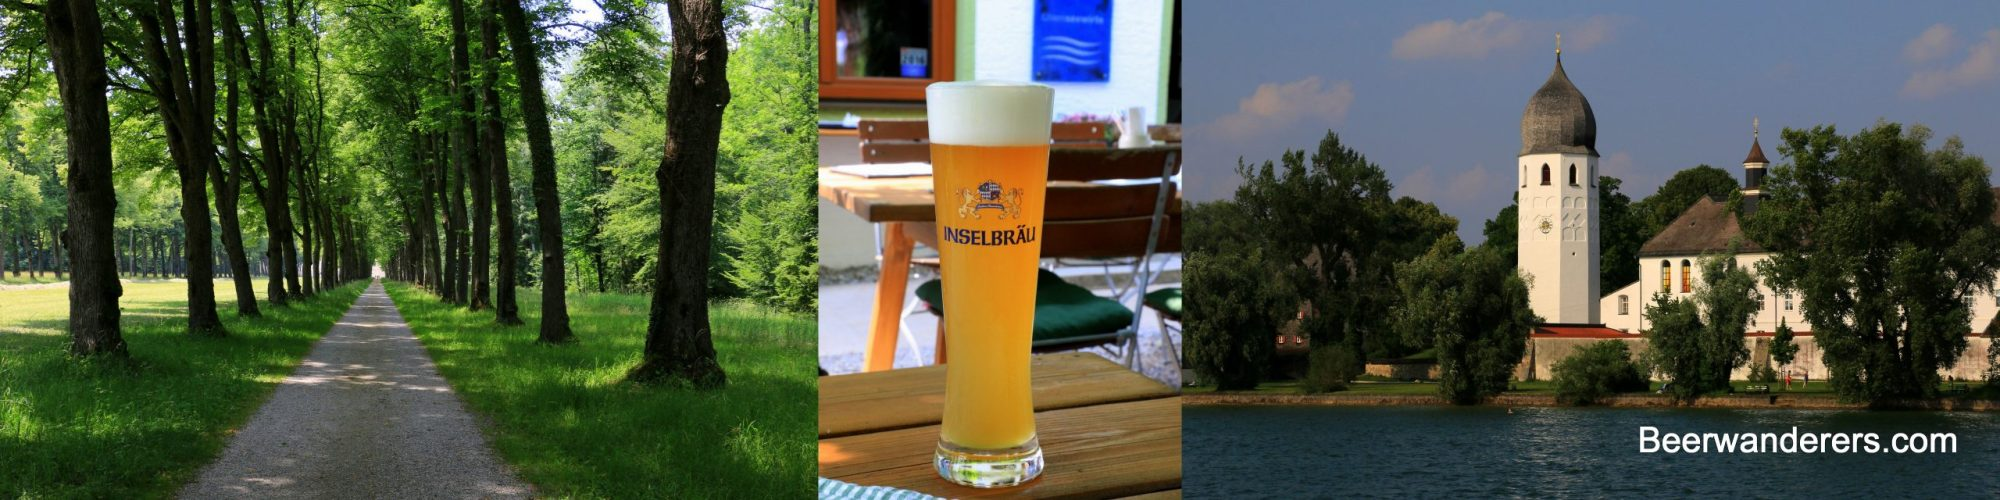 forest trail weissbier lake with church